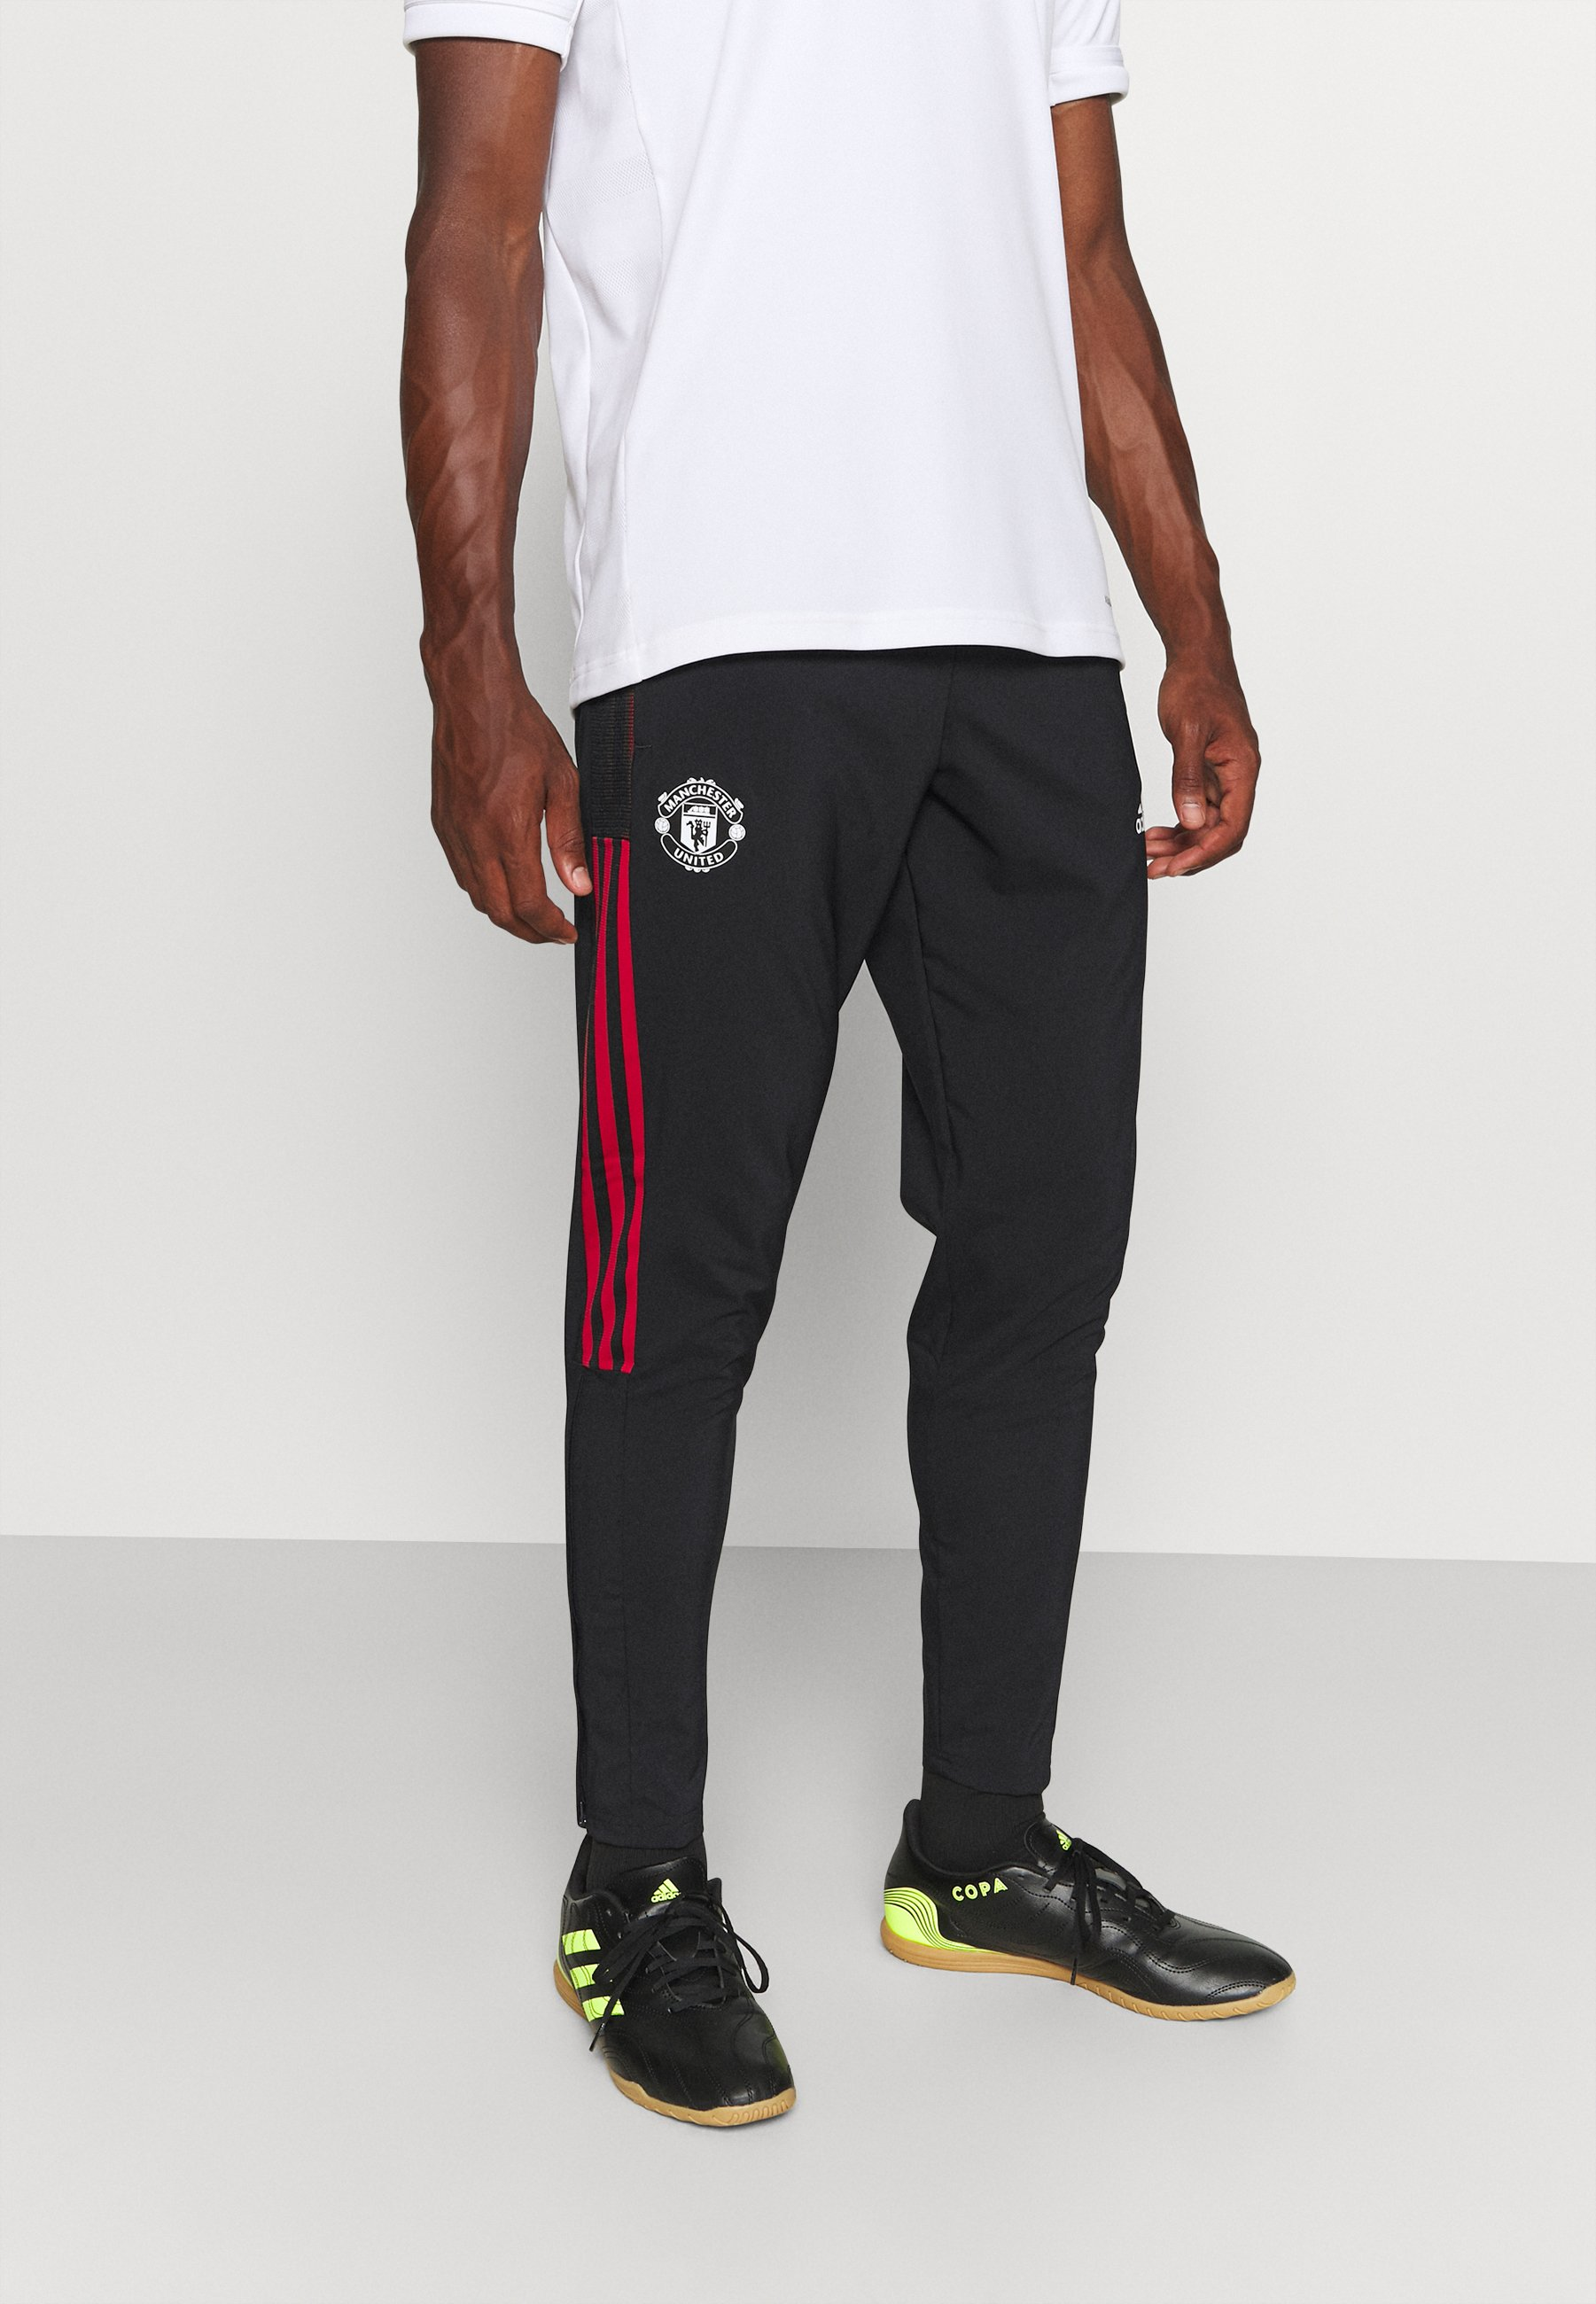 Homme MANCHESTER UNITED PRE PNT FOOTBALL AEROREADY PANTS - Article de supporter